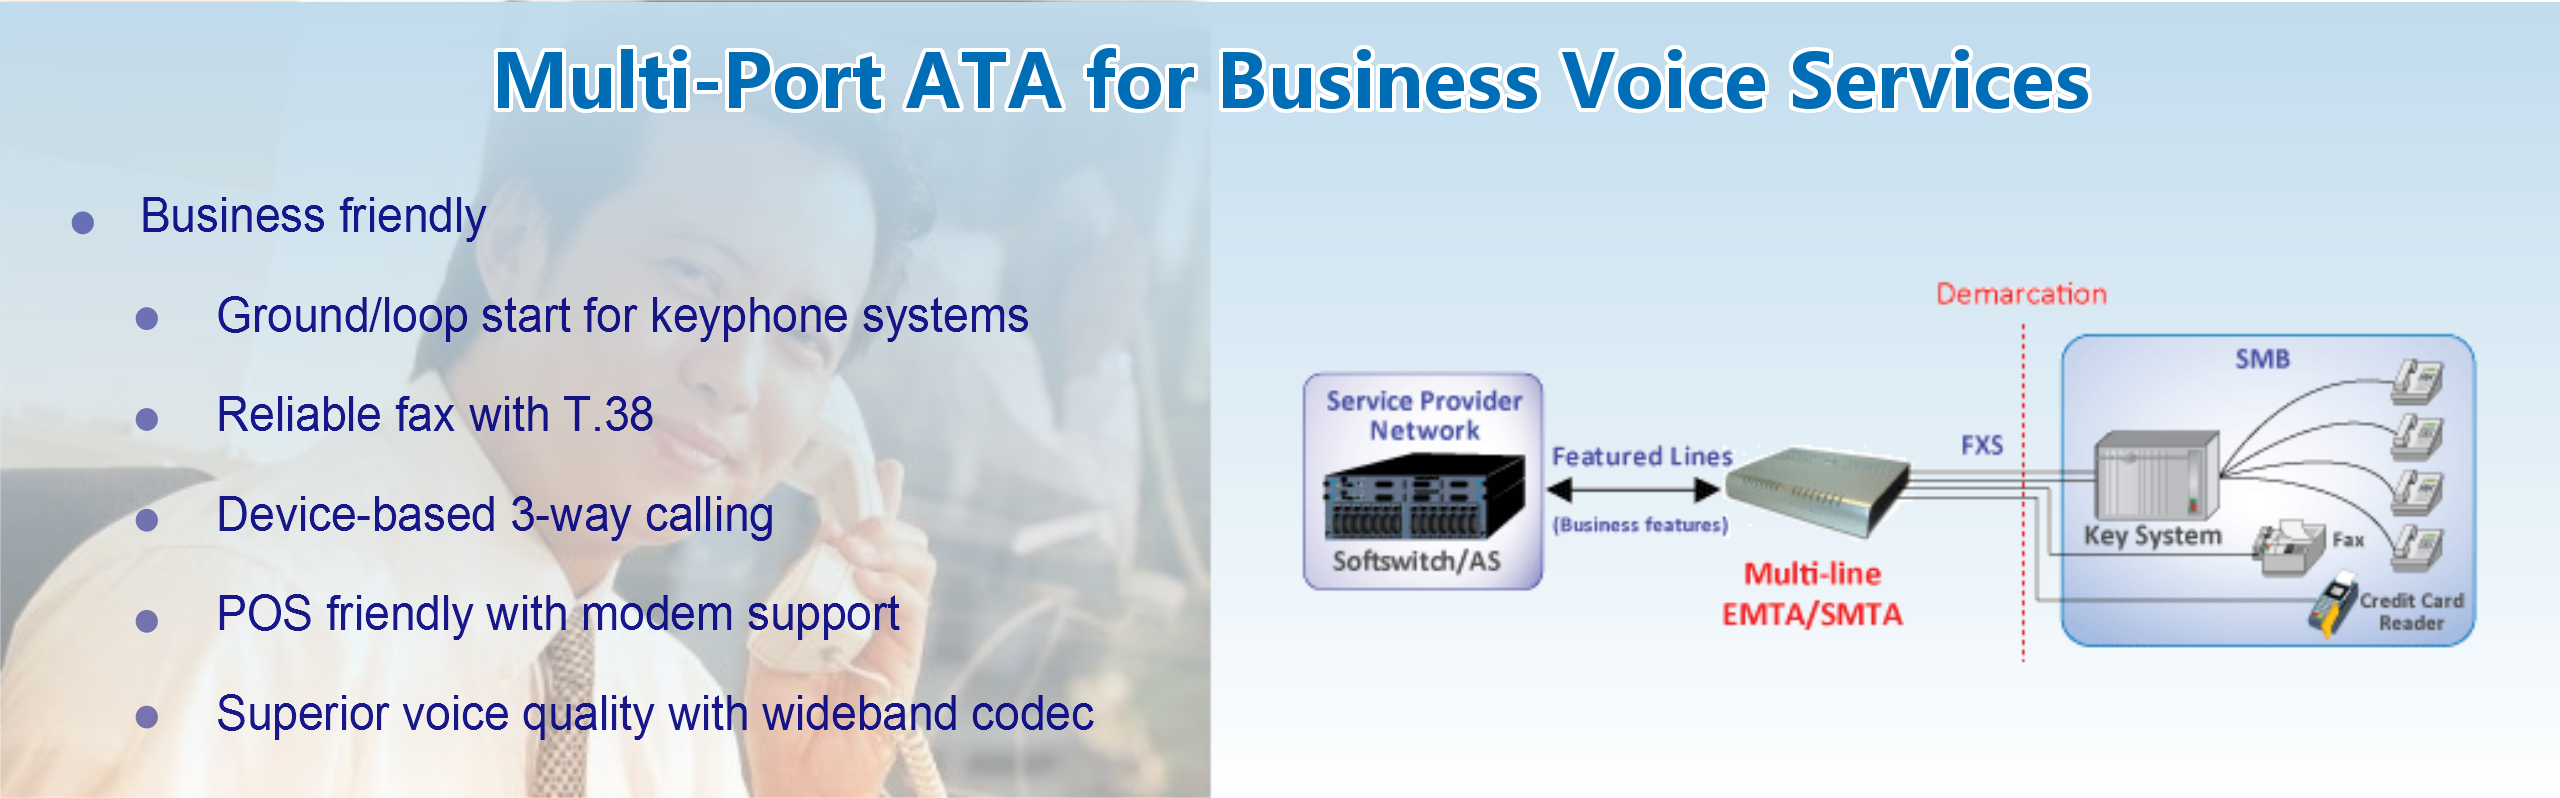 Multi-Port ATA for Business Voice Services